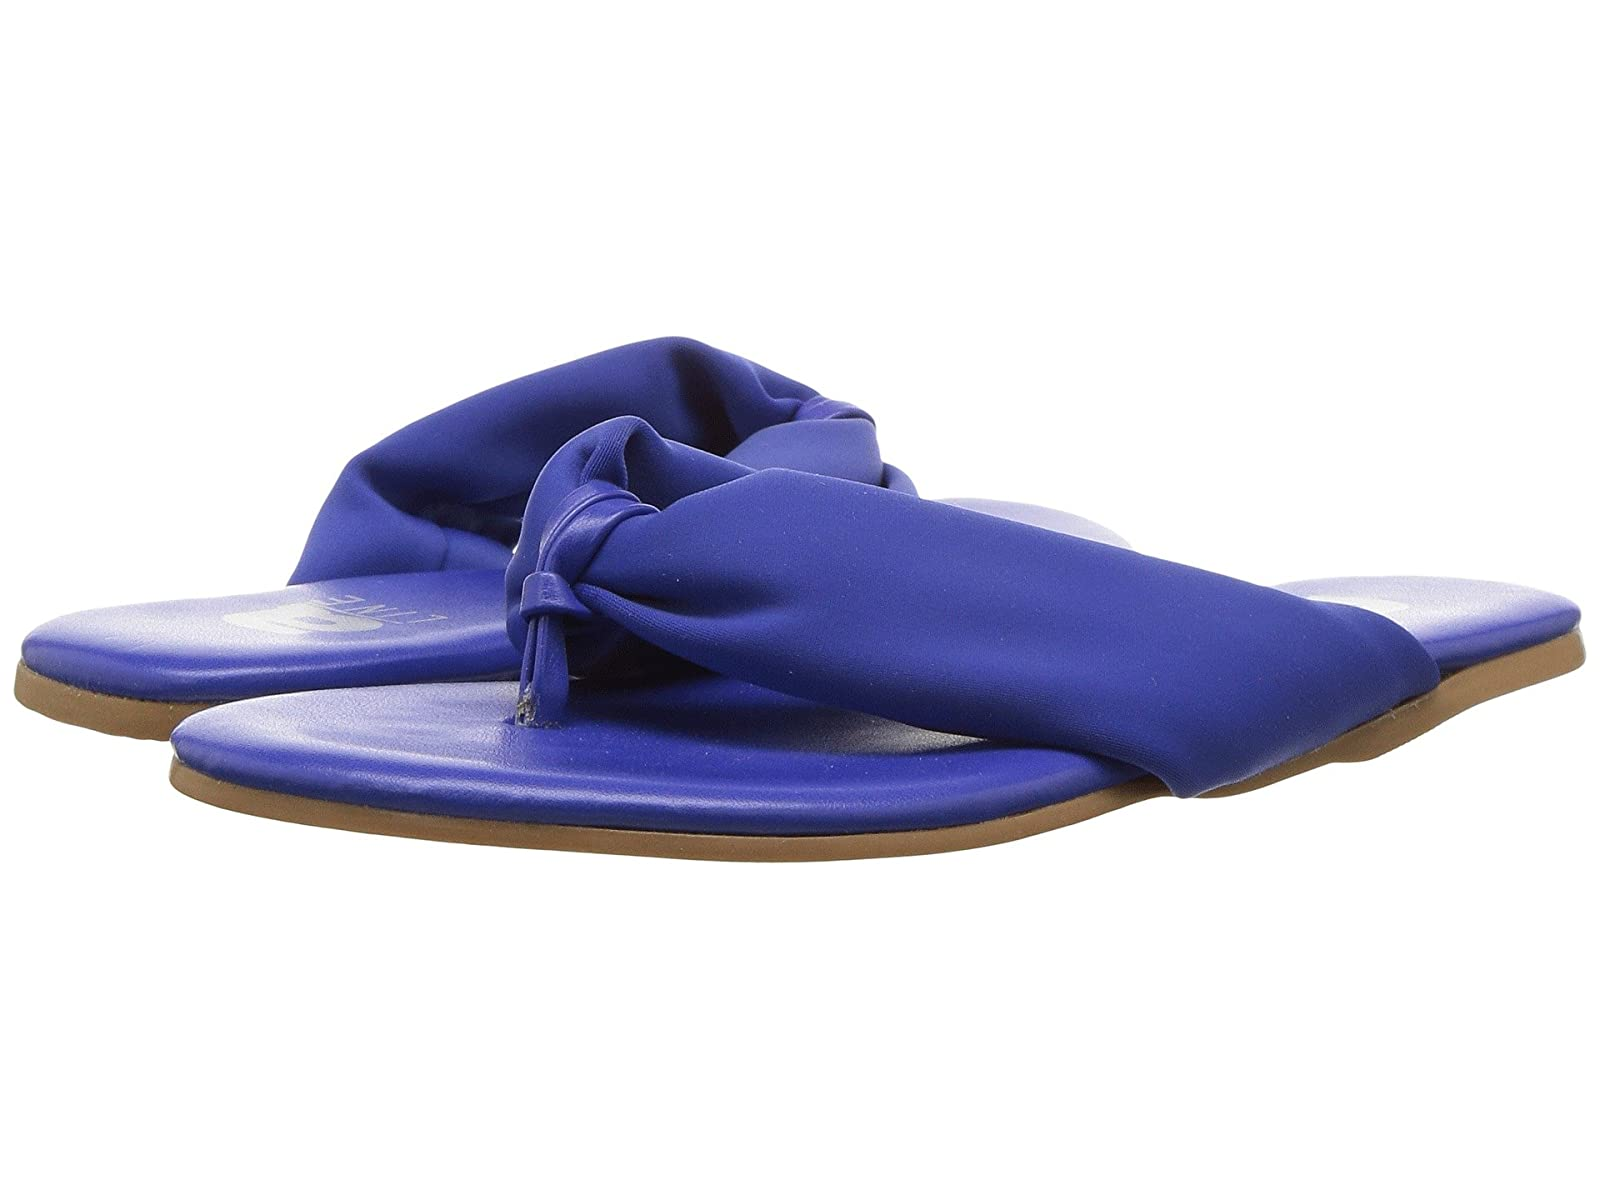 Amiana 12-1019 (Toddler/Little Kid/Big Kid/Adult)Comfortable and distinctive shoes